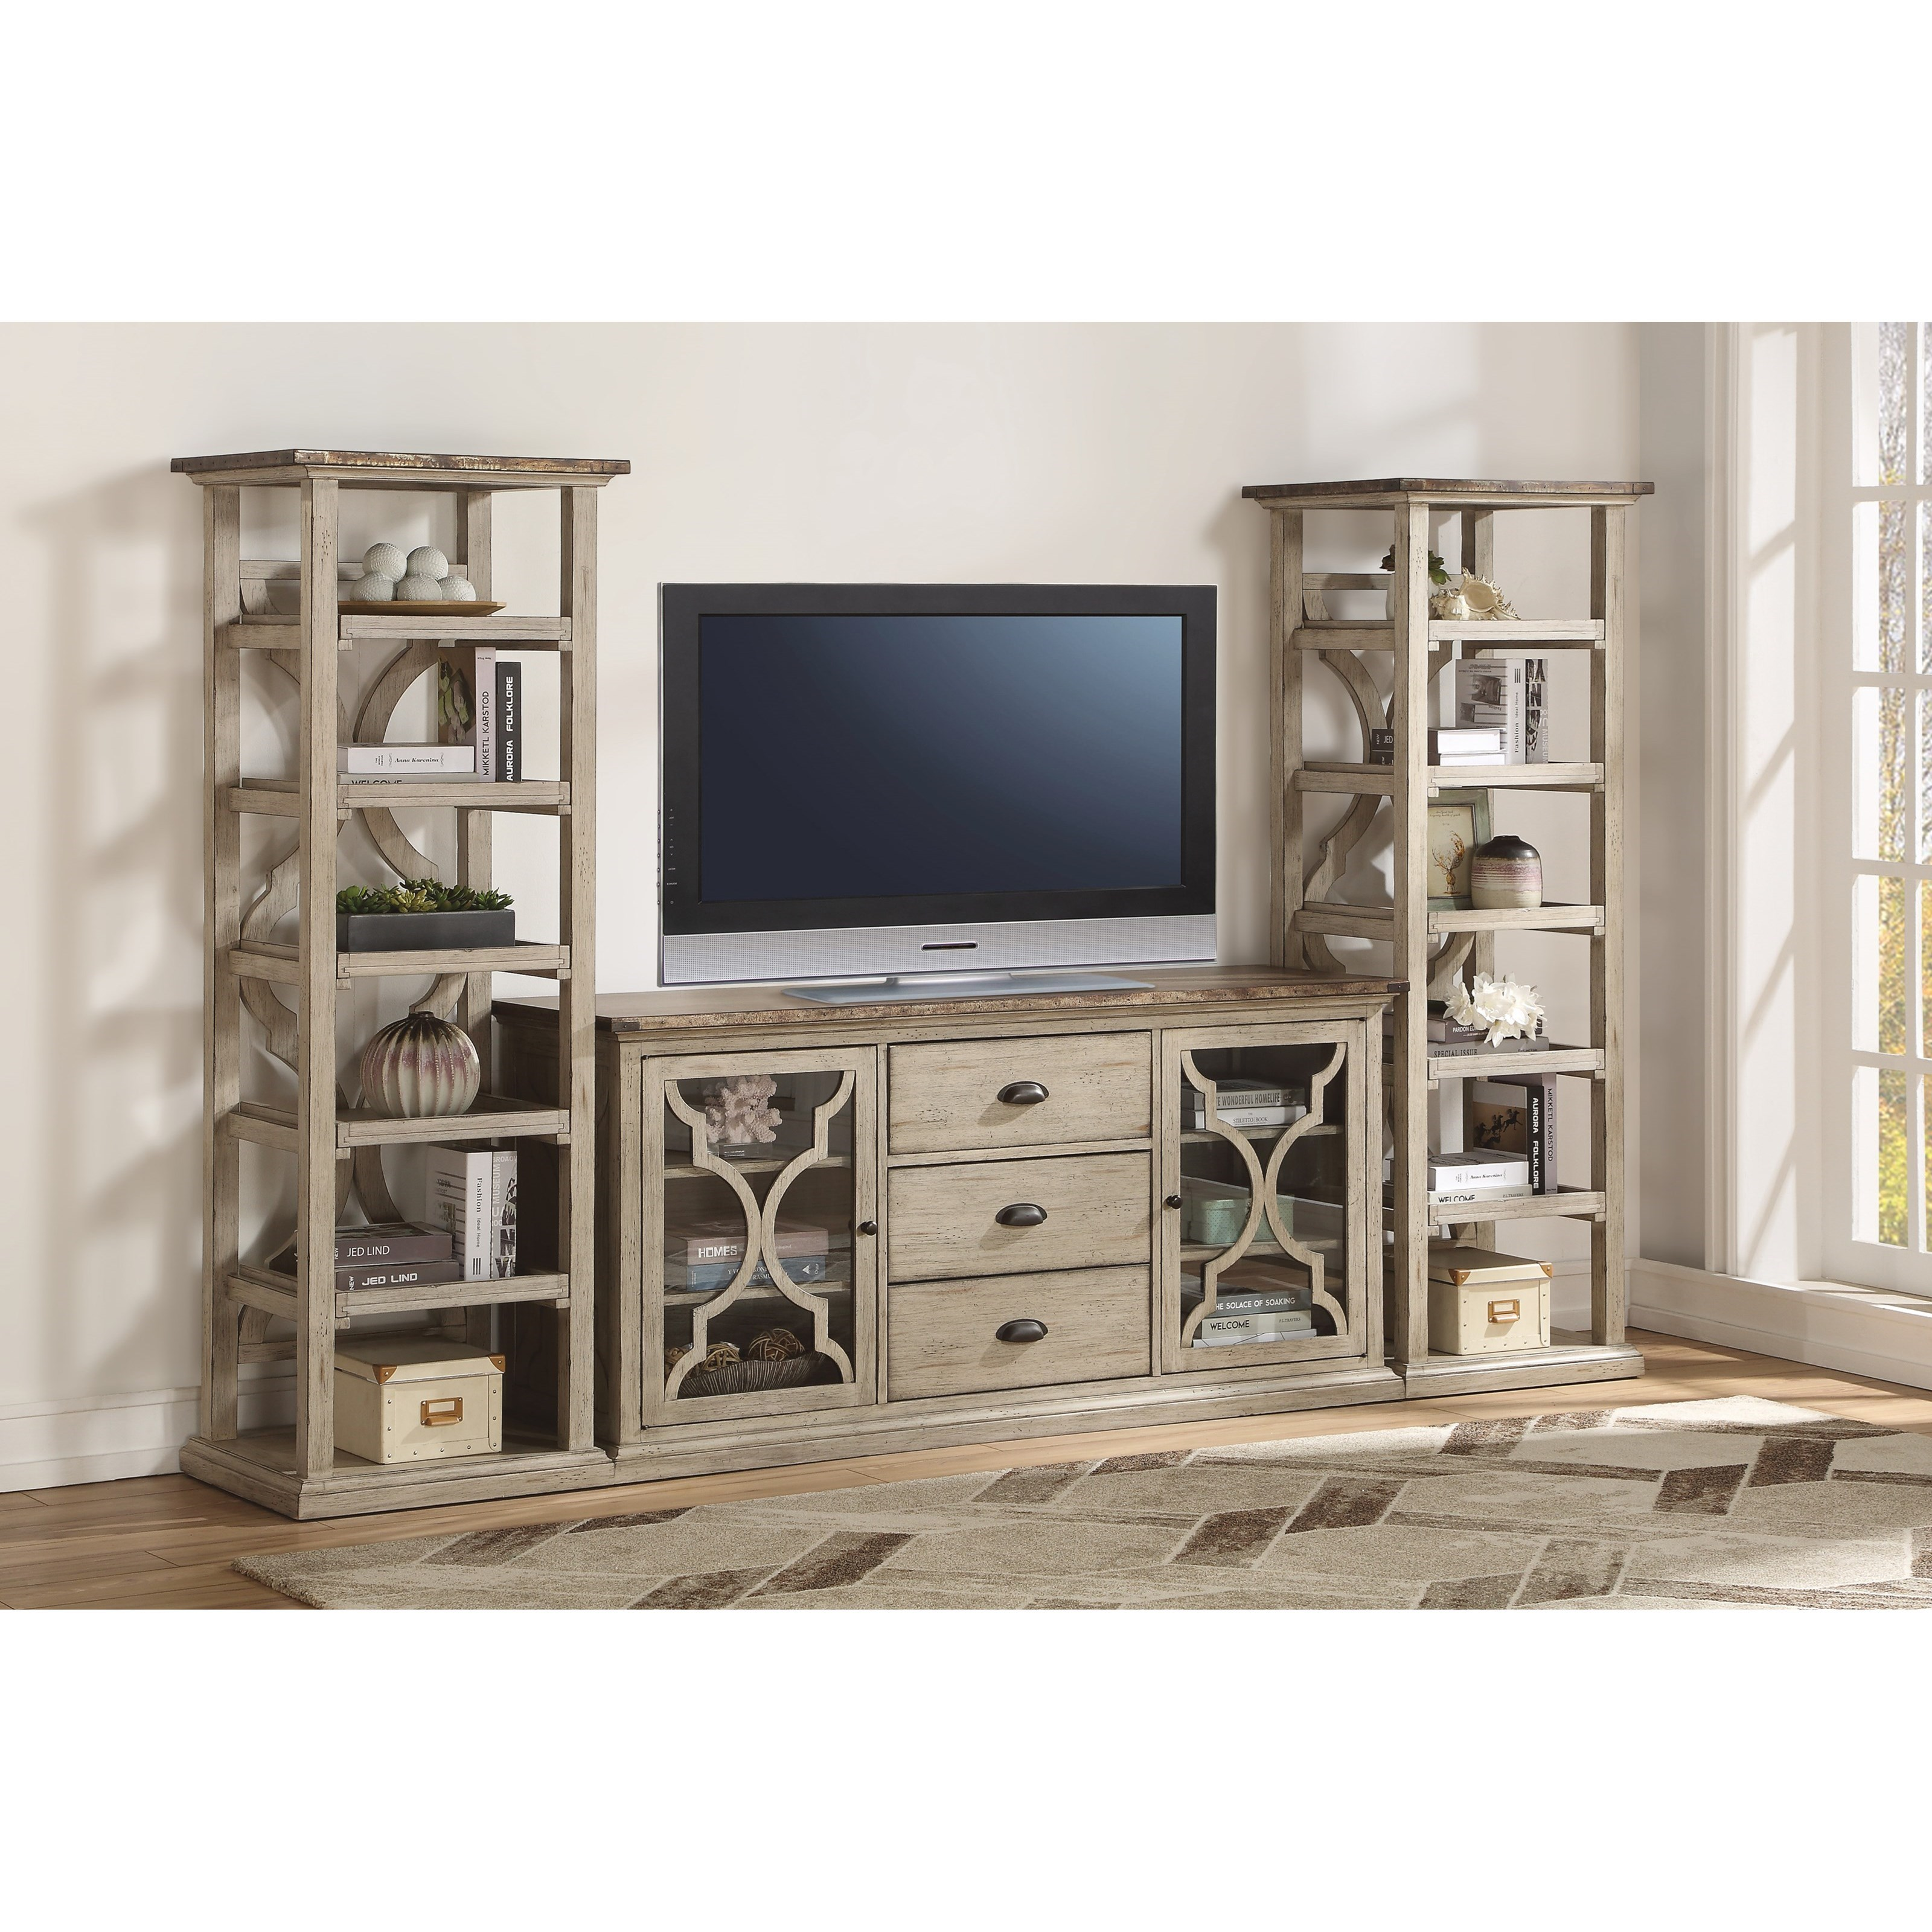 Estate Entertainment Center by Flexsteel Wynwood Collection at Wilcox Furniture